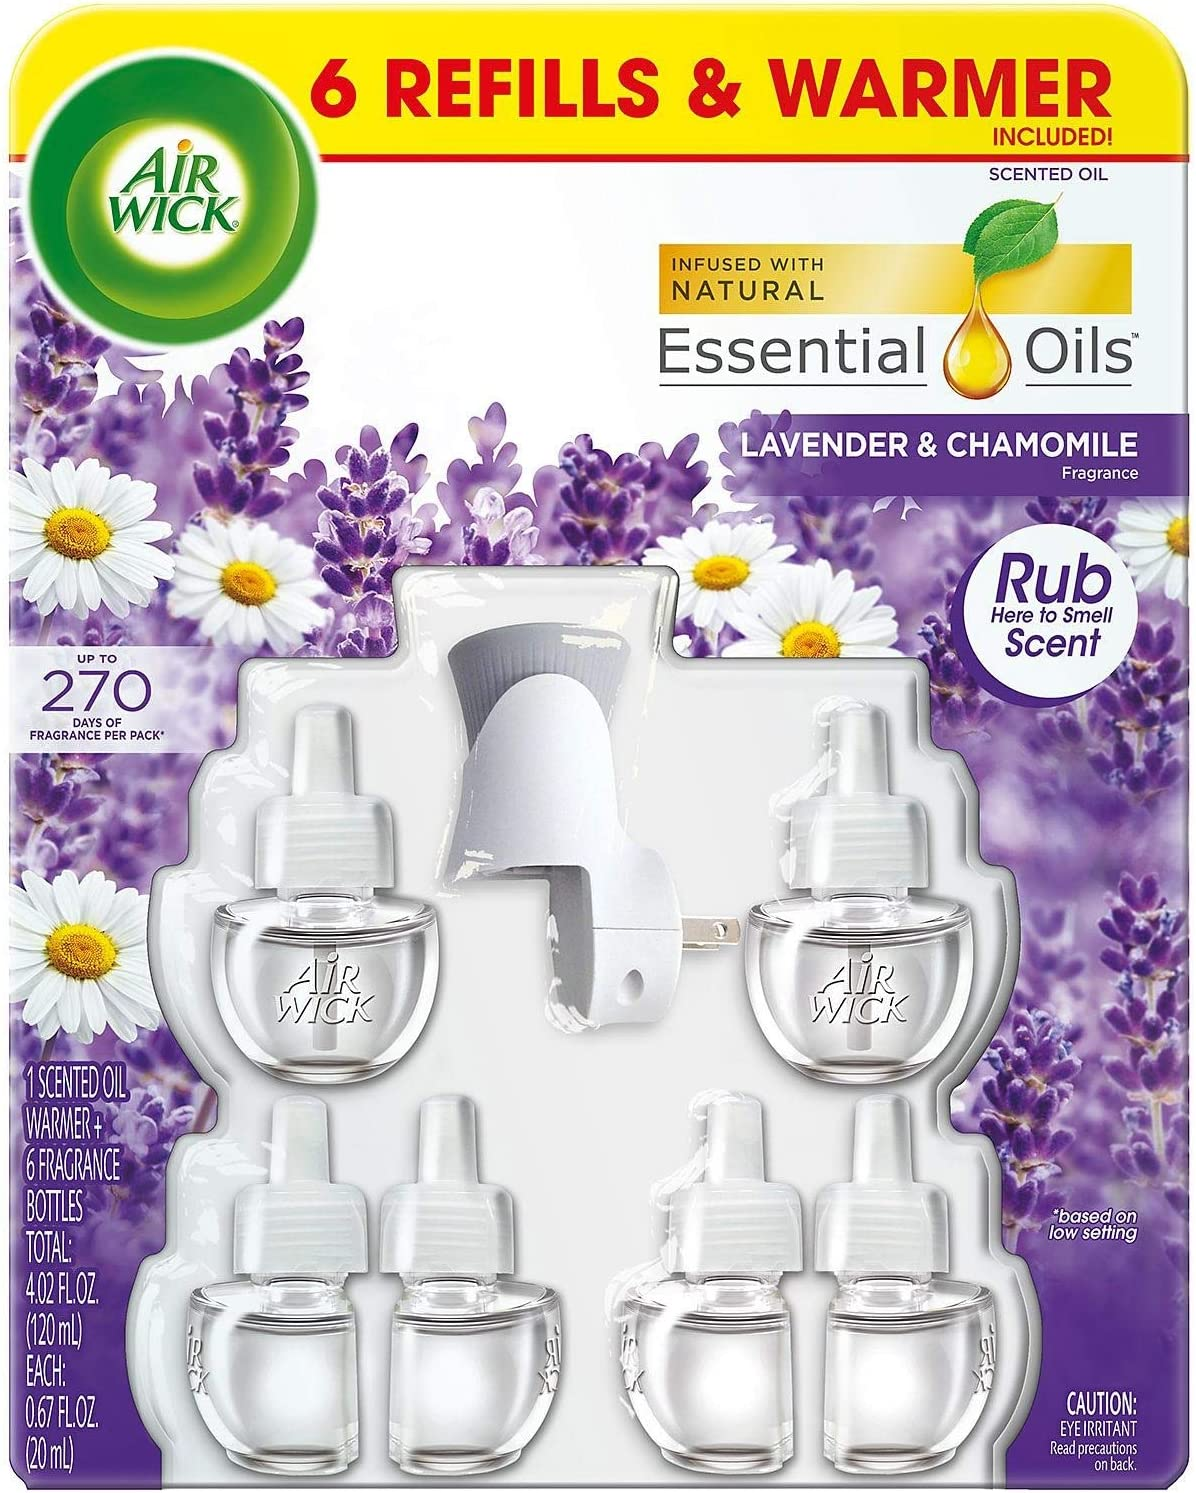 Air Wick Lavender & Chamomile 6 Scented Essential Oils + 1 Warmer